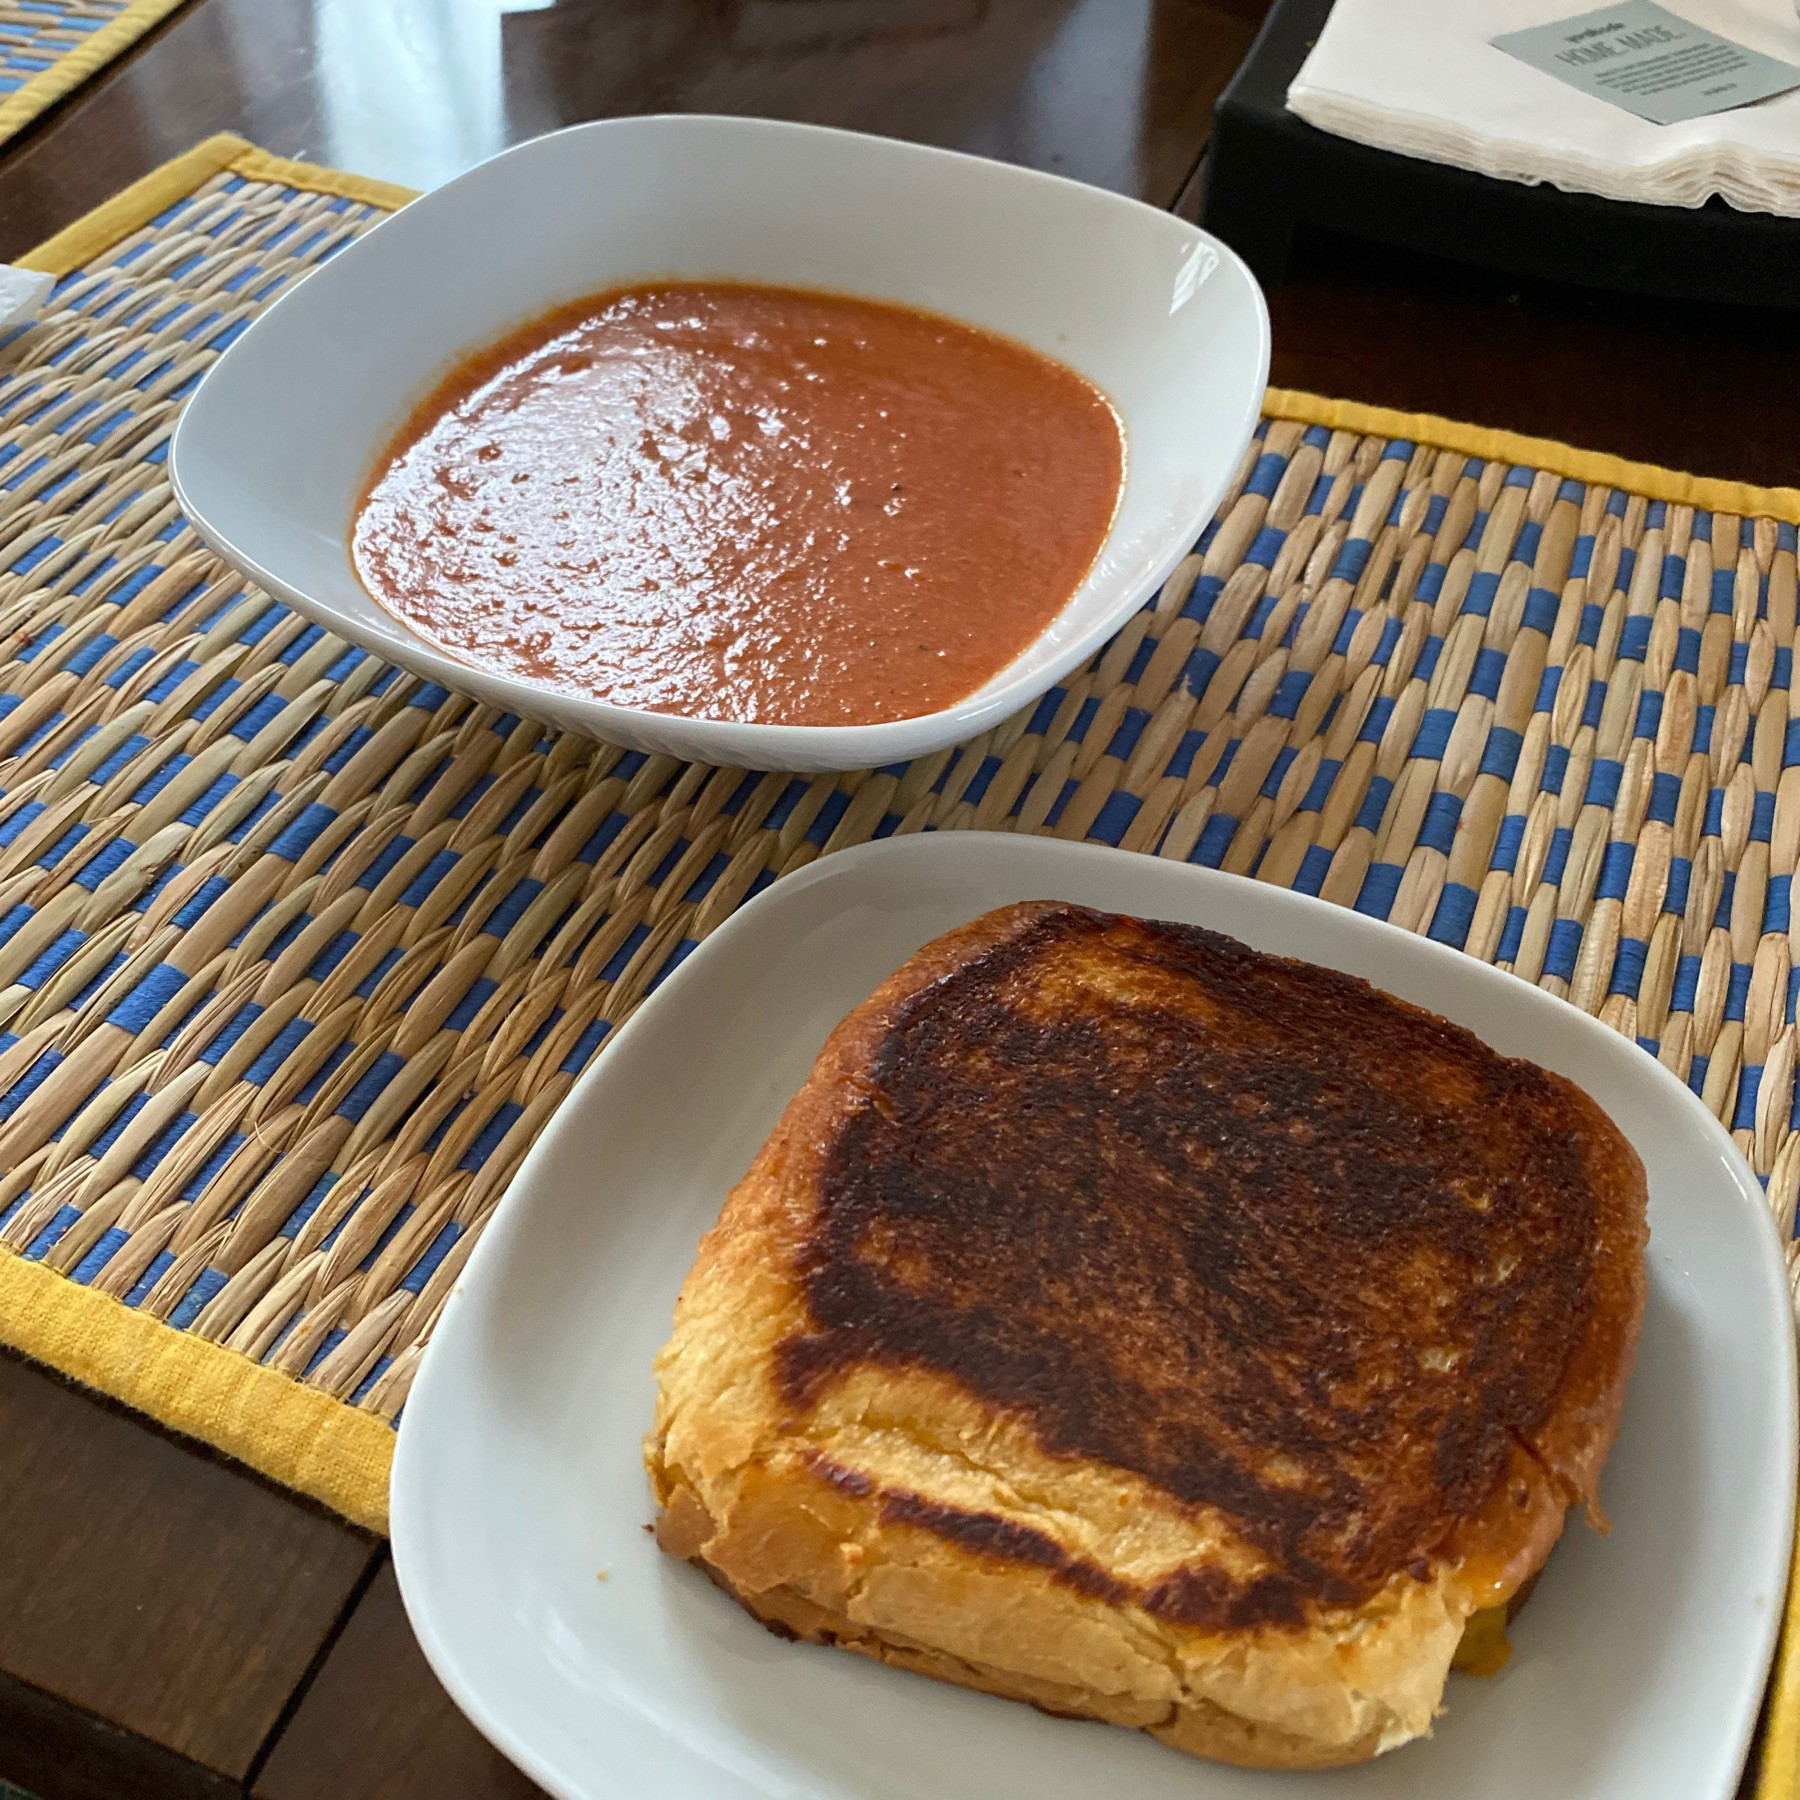 Grilled cheese sandwich and bowl of tomato soup.